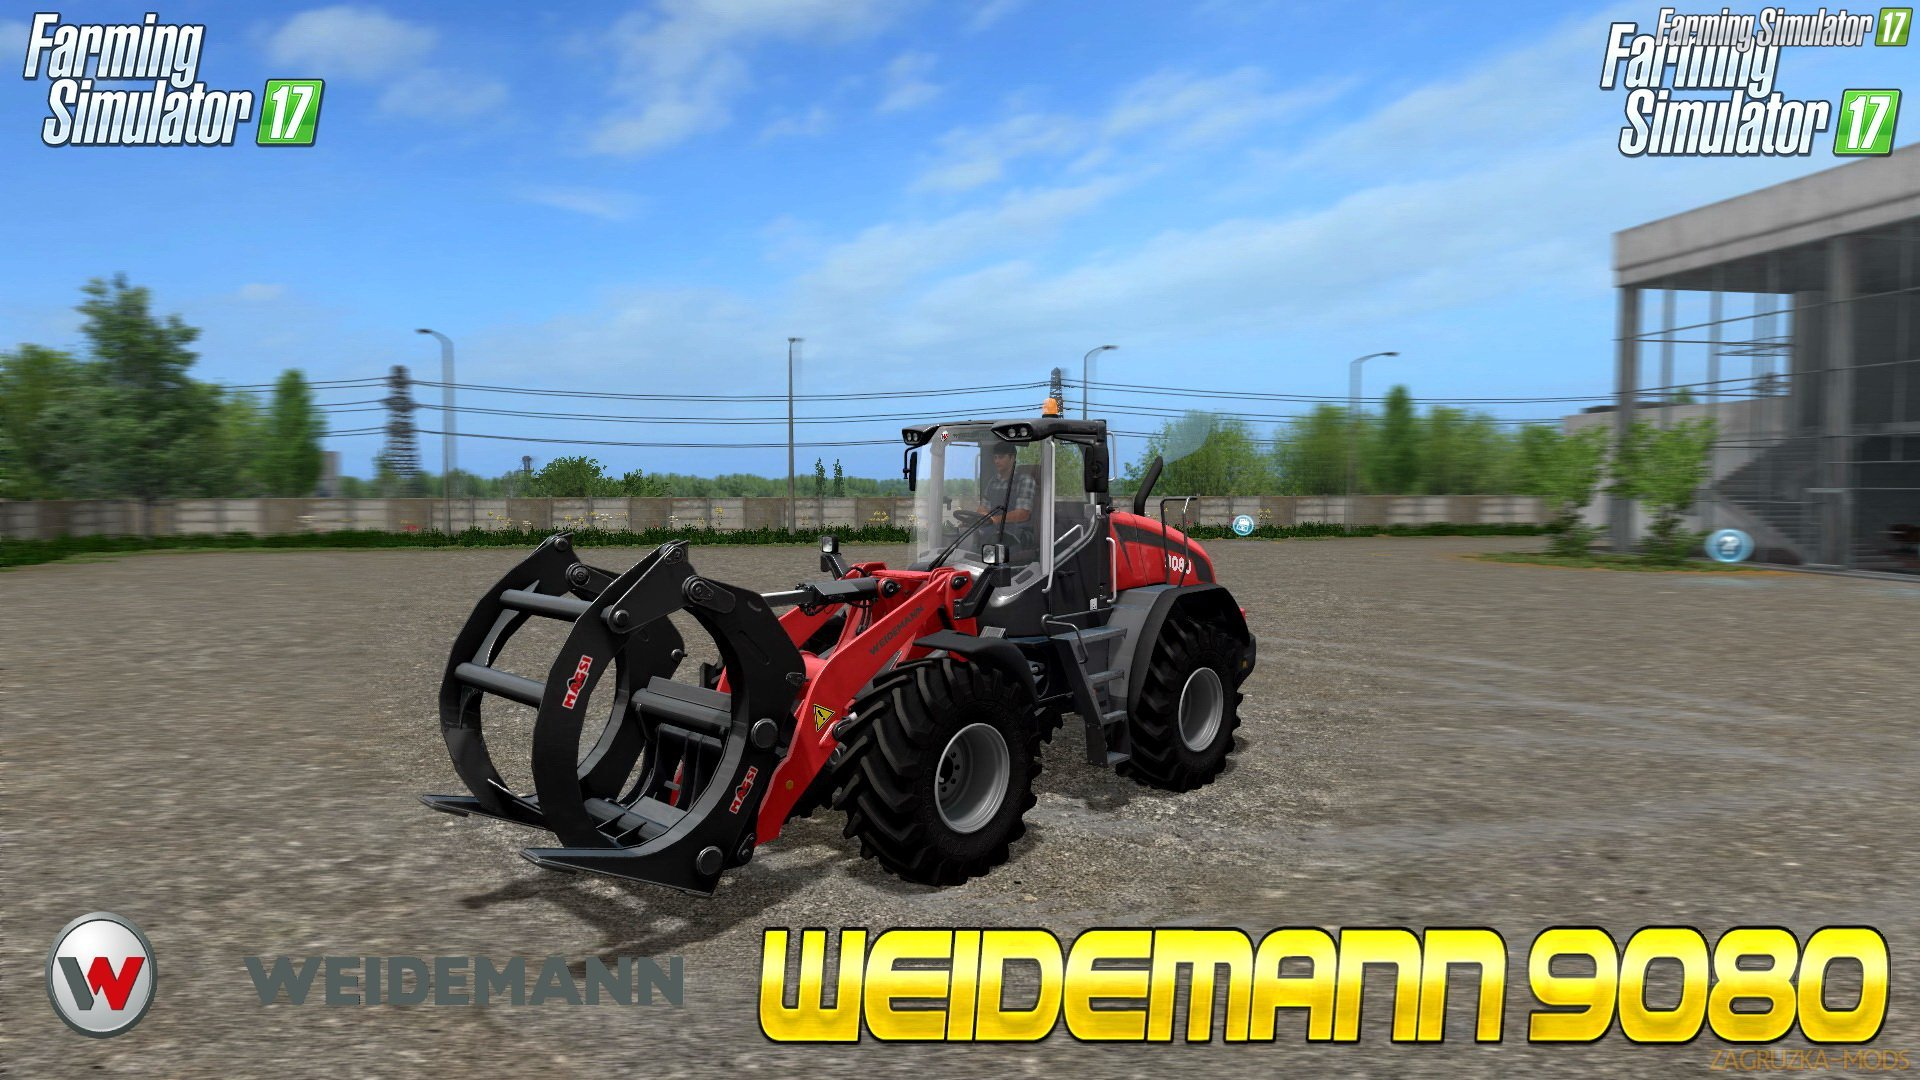 Weidemann 9080 v1.0 for FS 17